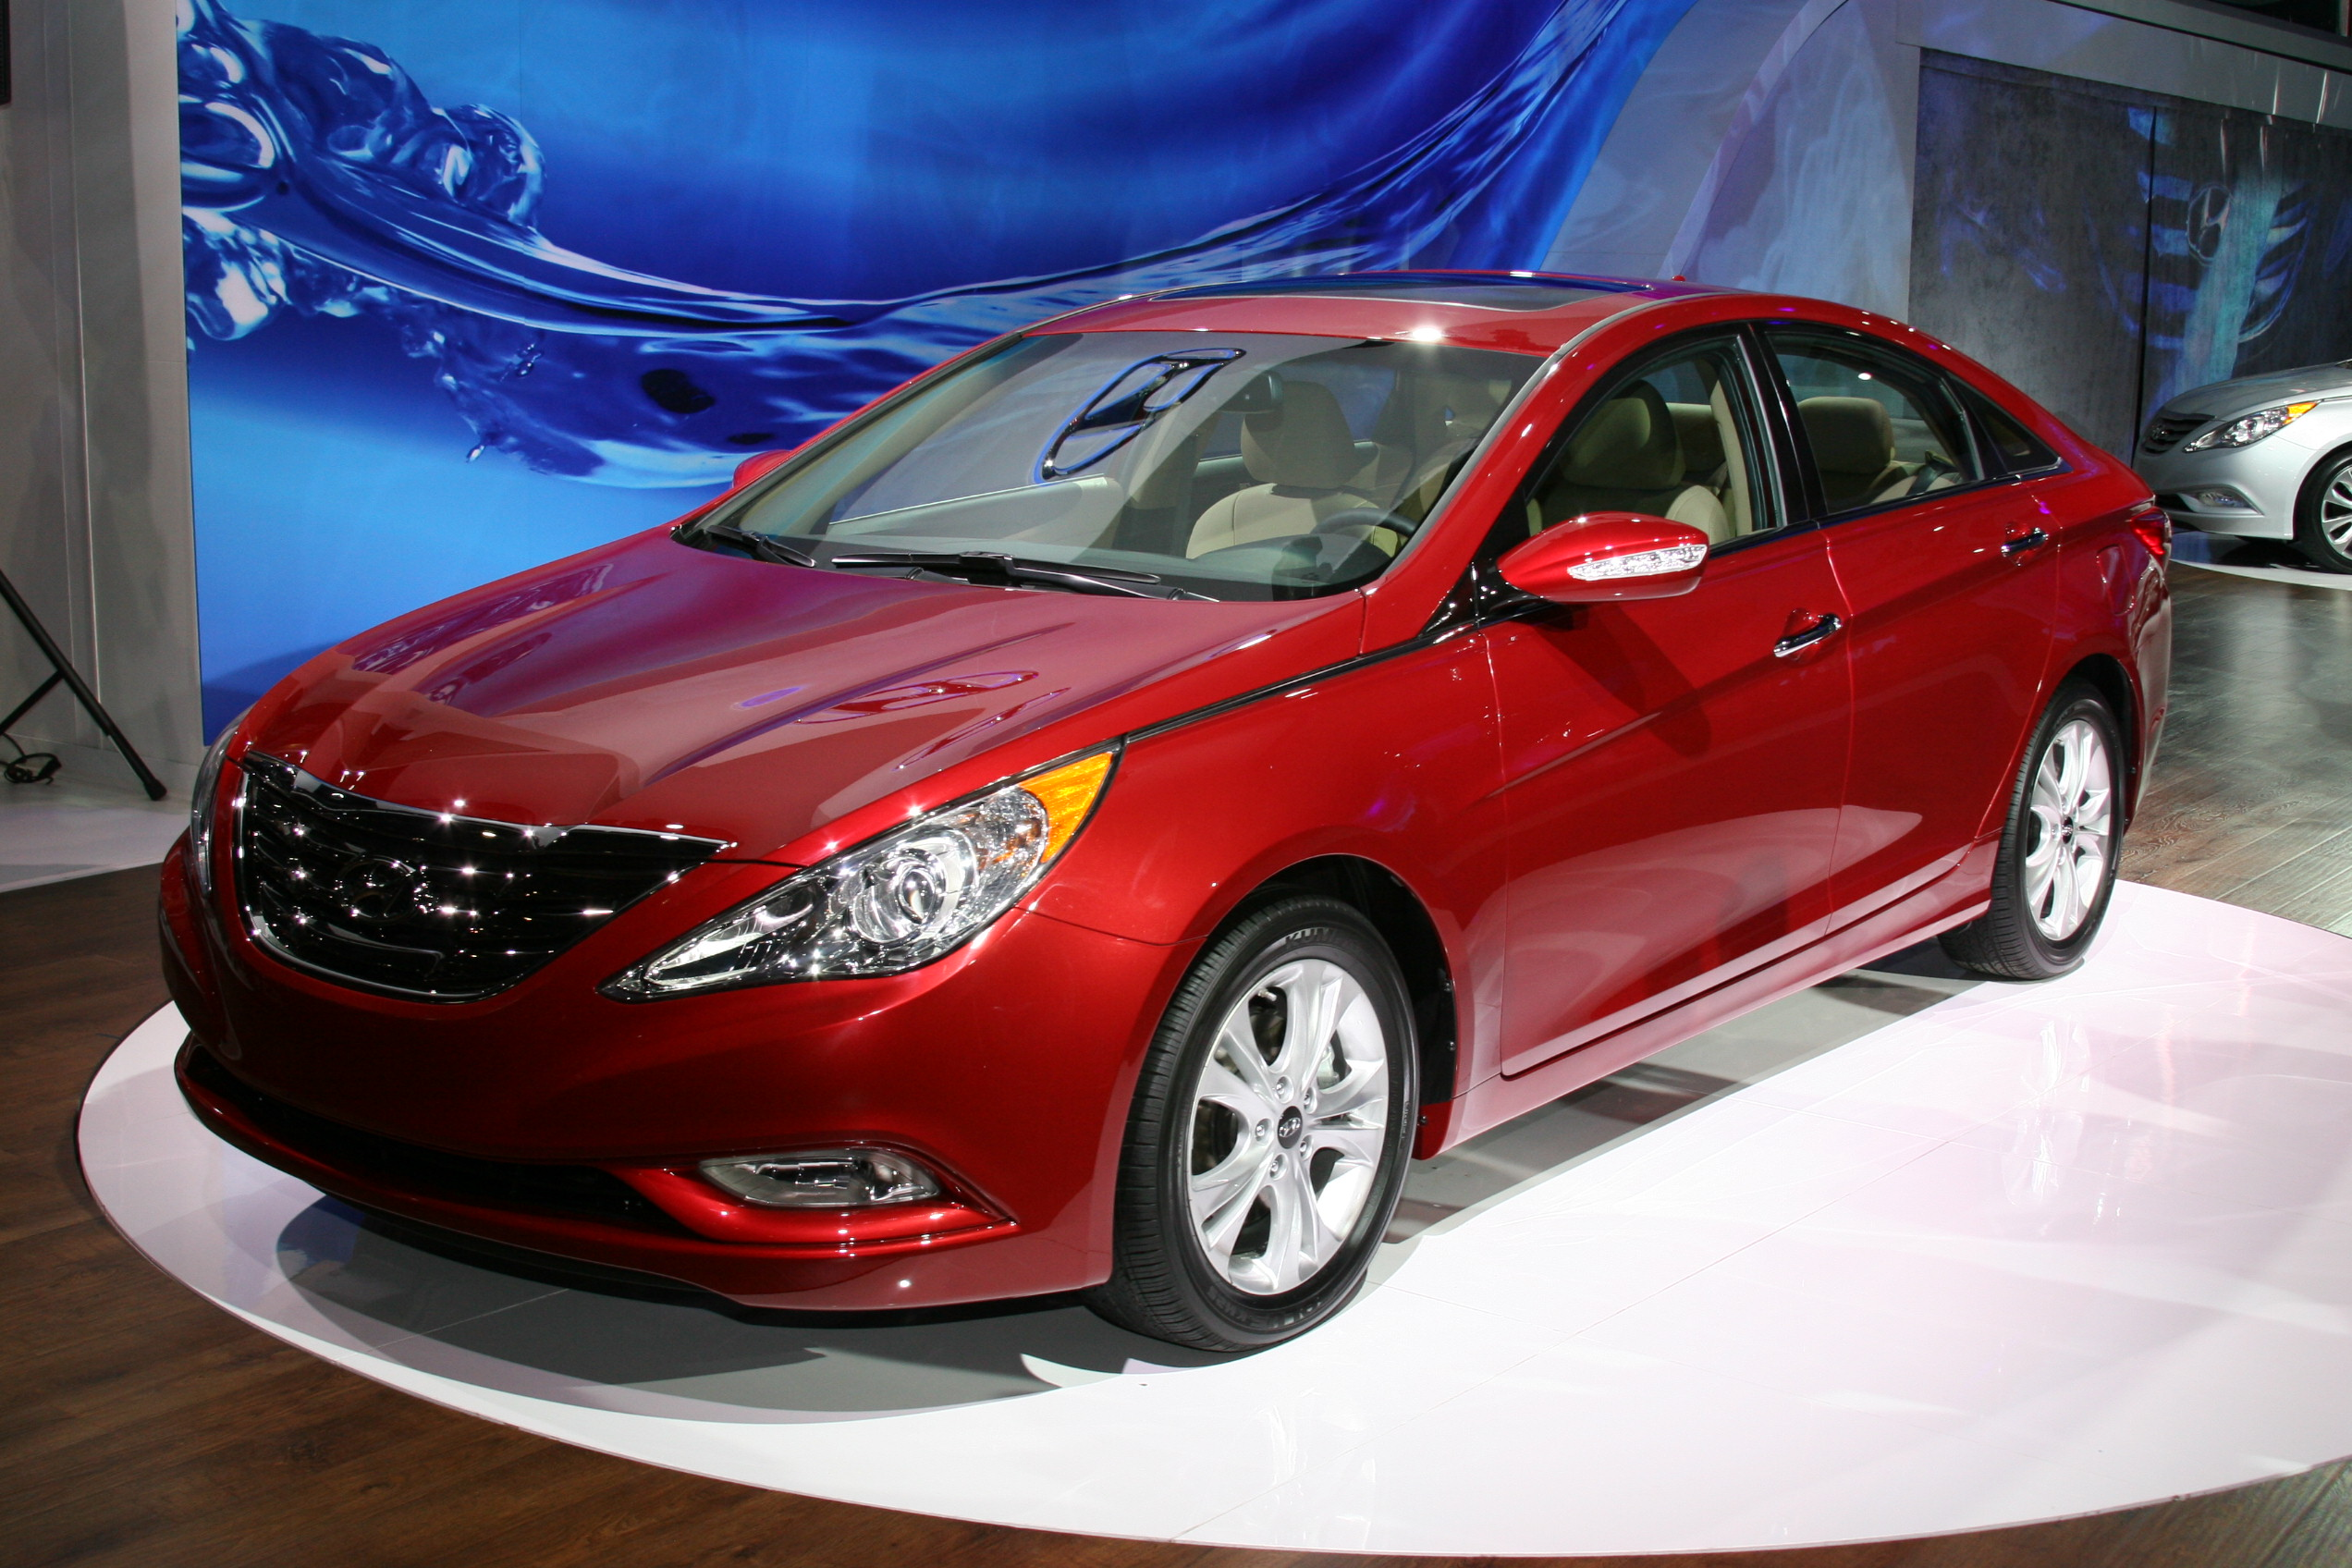 Honda Accord Versus Hyundai Sonata Major Differences